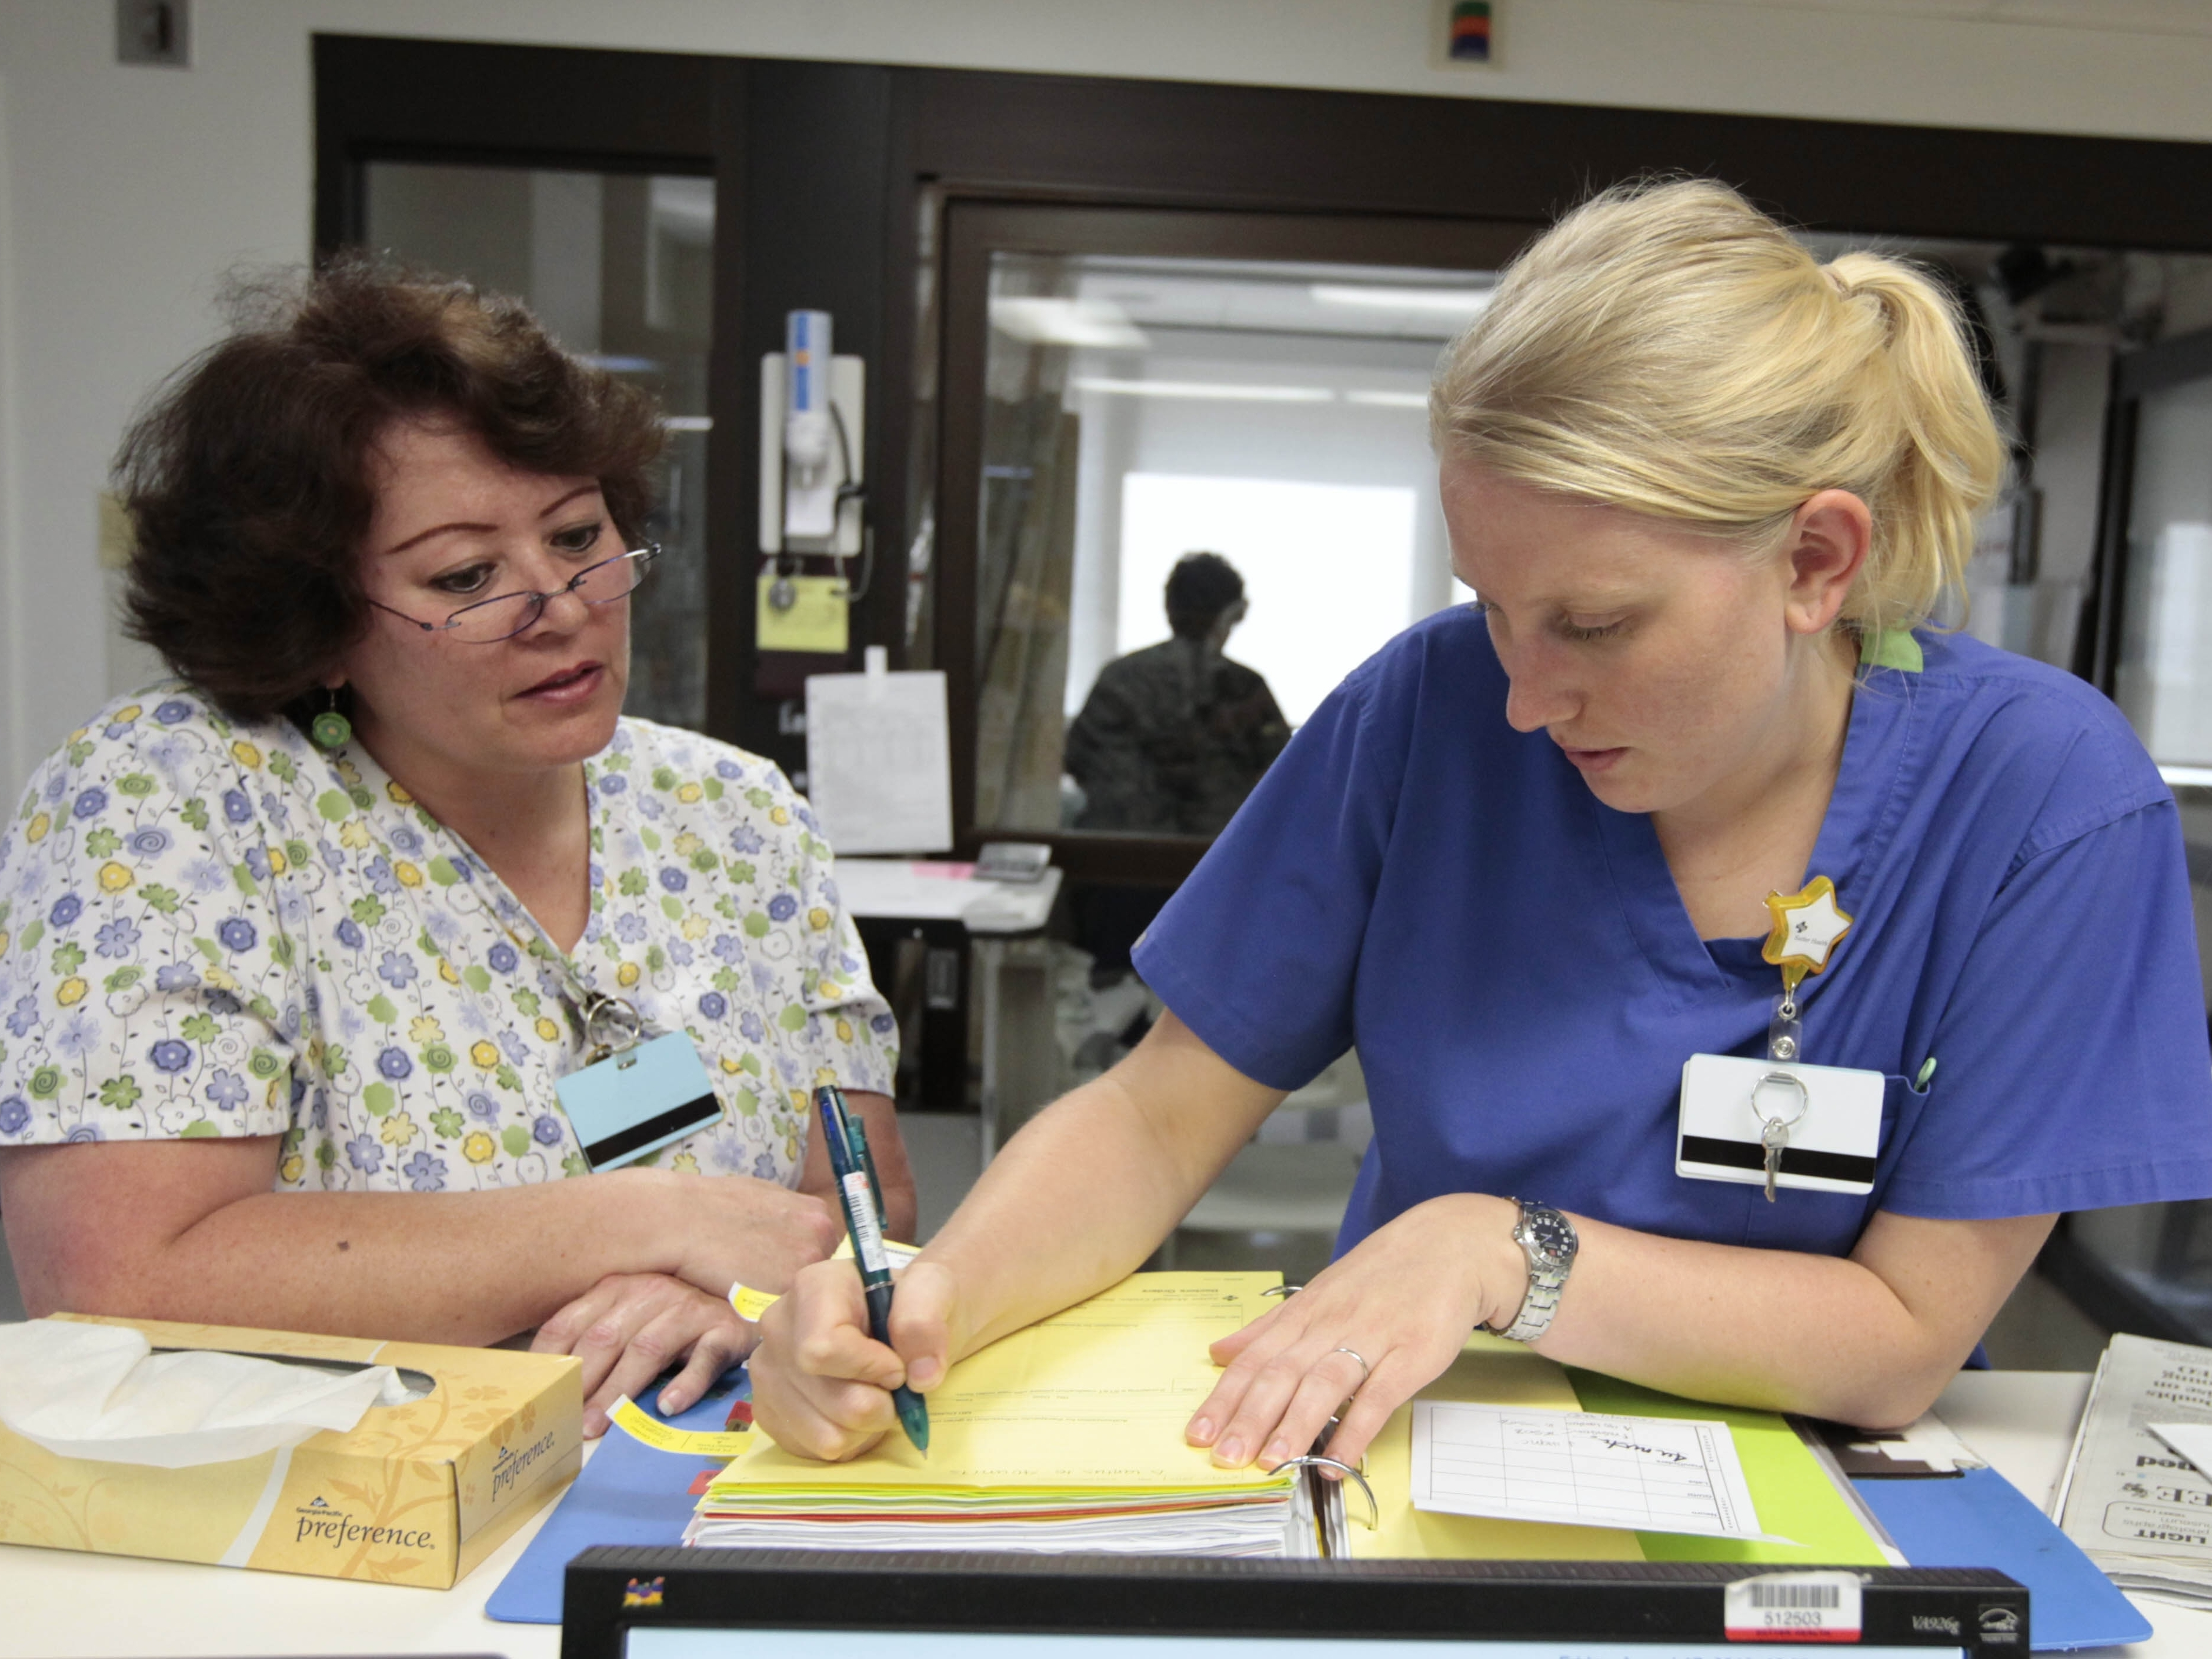 Kathryn Gilles, a new registered nurse at Sutter Memorial Hospital, in Sacramento, Calif., puts information into a patient's chart under the supervision of her mentor, Eileen Anderson, R.N., BSN.